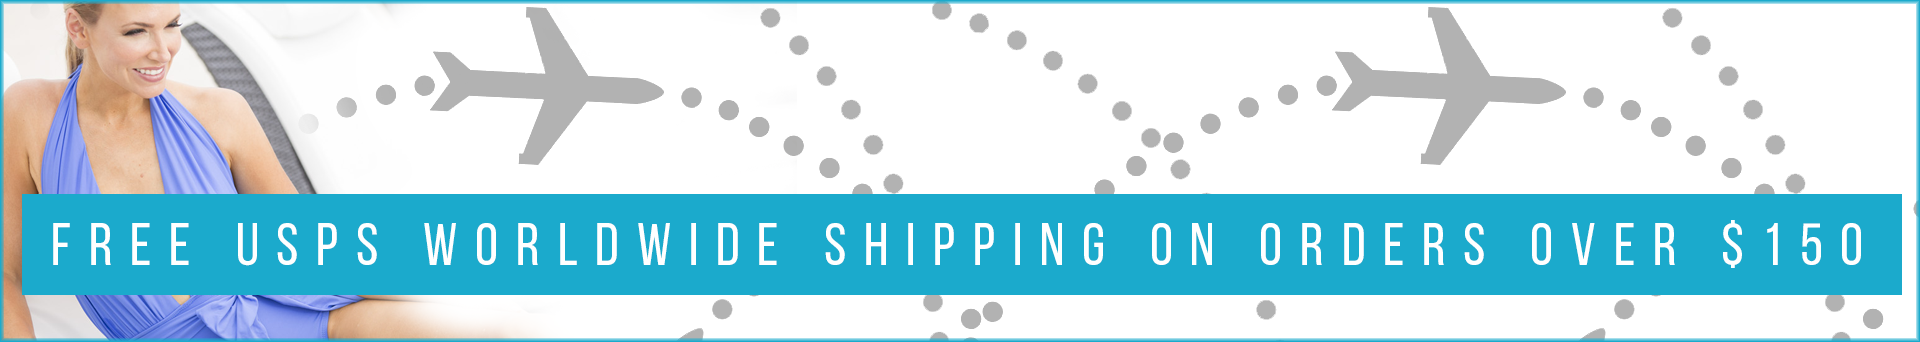 Free Worldwide Shipping Available for Orders Over $150